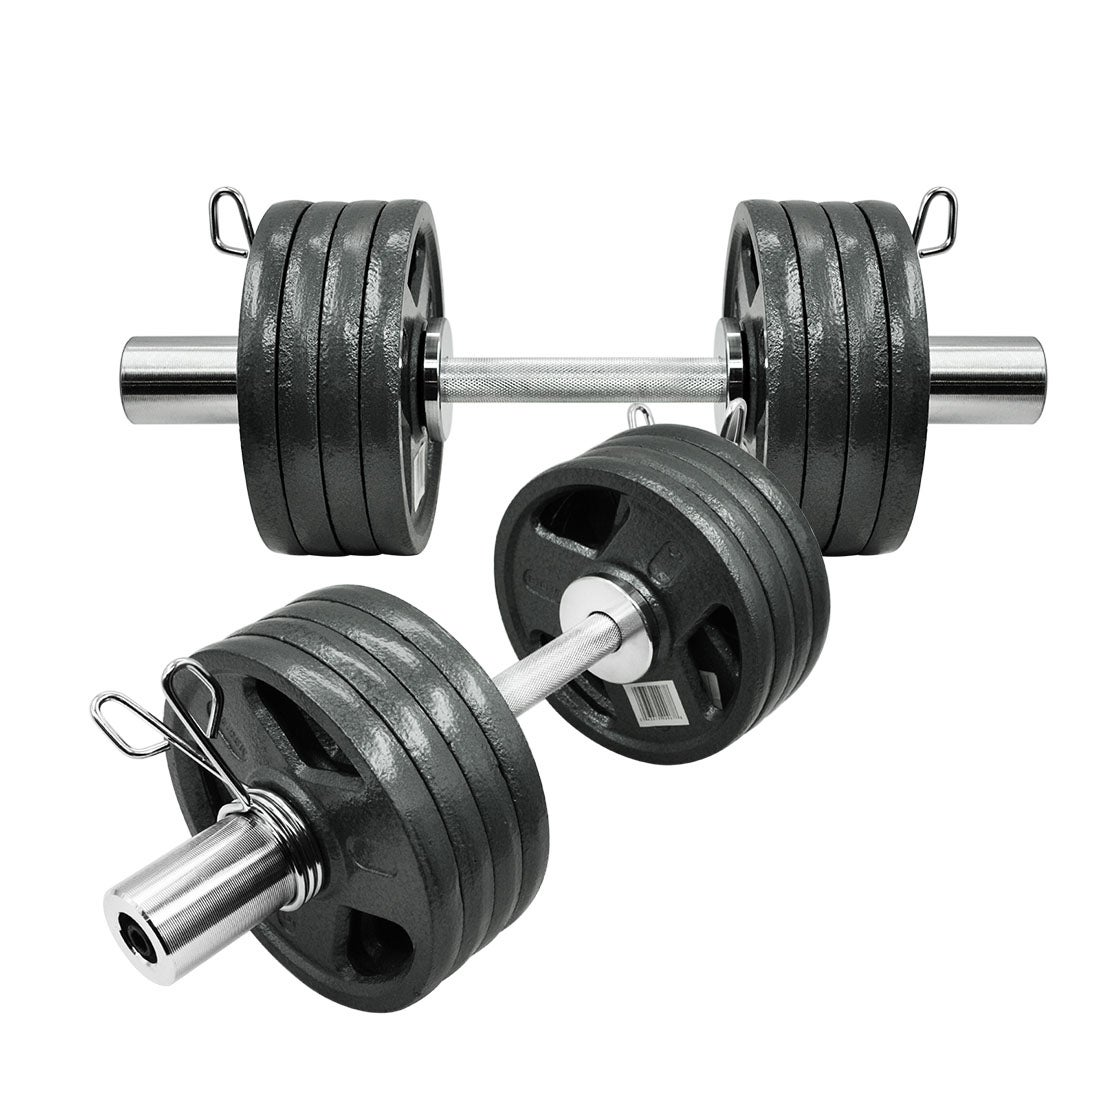 44.3kg Olympic Dumbell Set - 5lbs x 16 Cast Iron Weight Plate 50cm Dumbbell Set